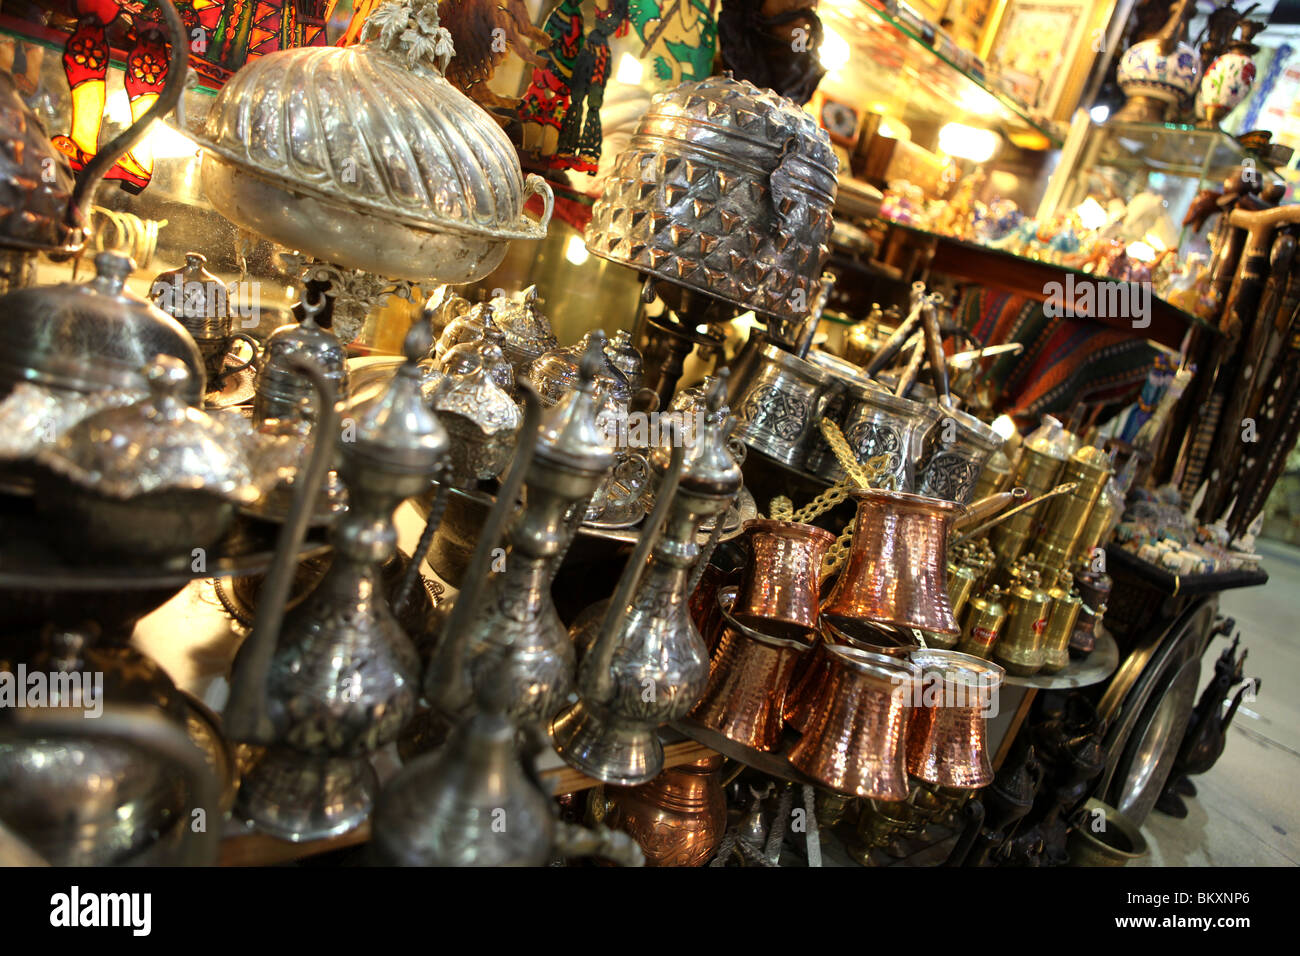 Turkish teapots and metalware in the Grand Bazaar in central Istanbul, Turkey in Europe. Stock Photo